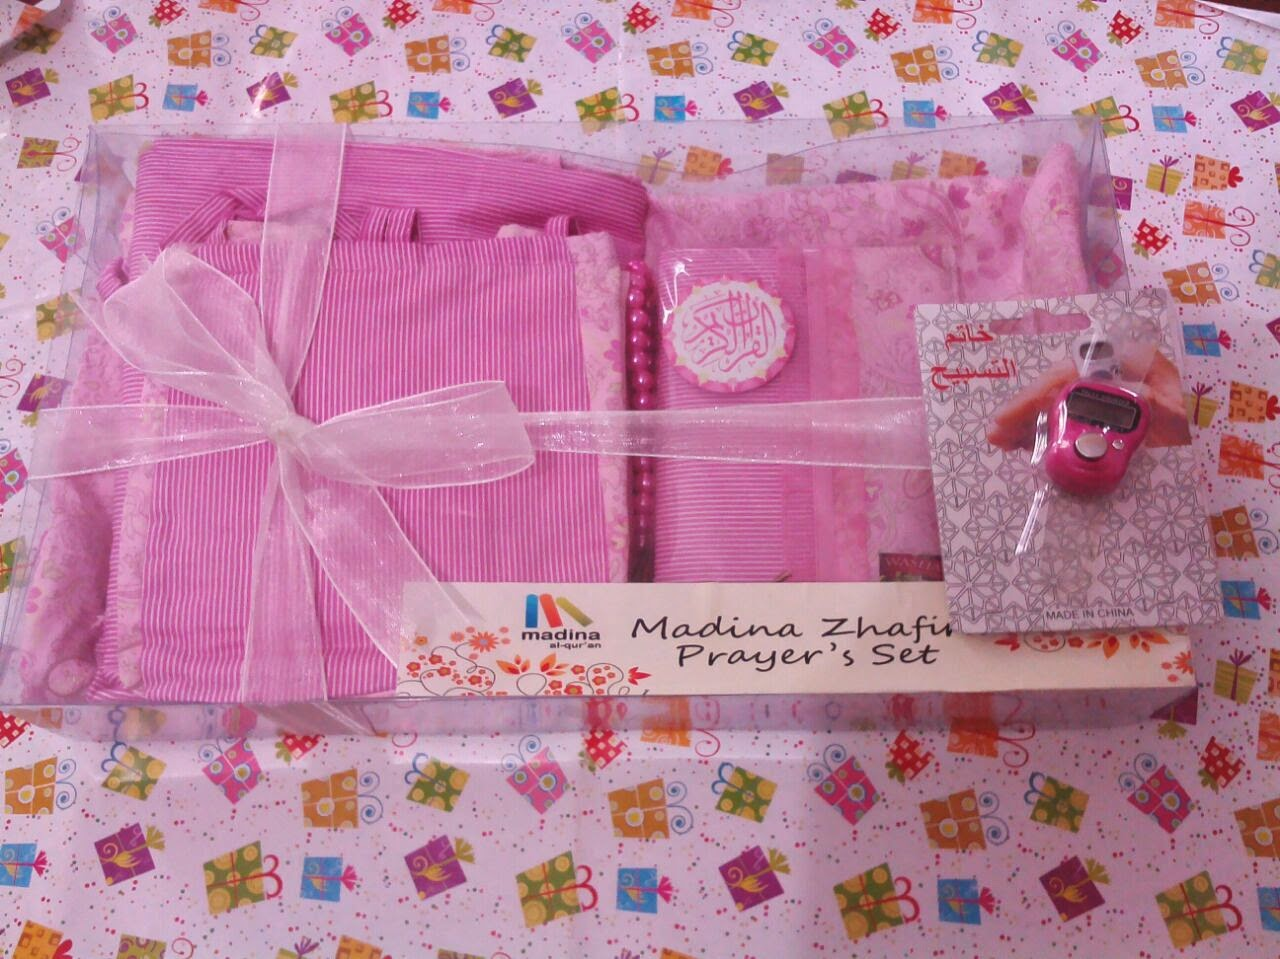 prayer set madina, prayer set madina murah, jual prayer set madina, prayer set madina harga murah, harga prayer set madina, prayer set madina online